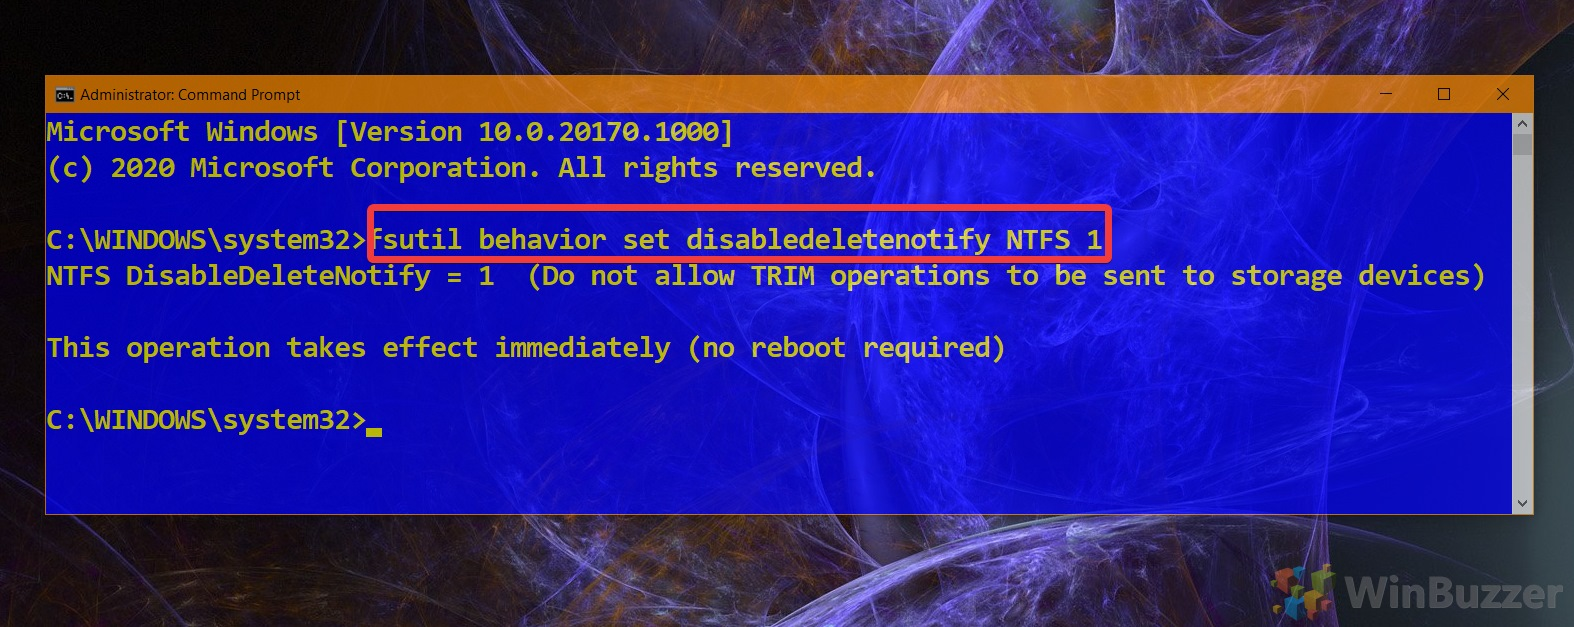 01.3 Windows 10 Elevated Command Prompt Command to Disable Trim NTFS